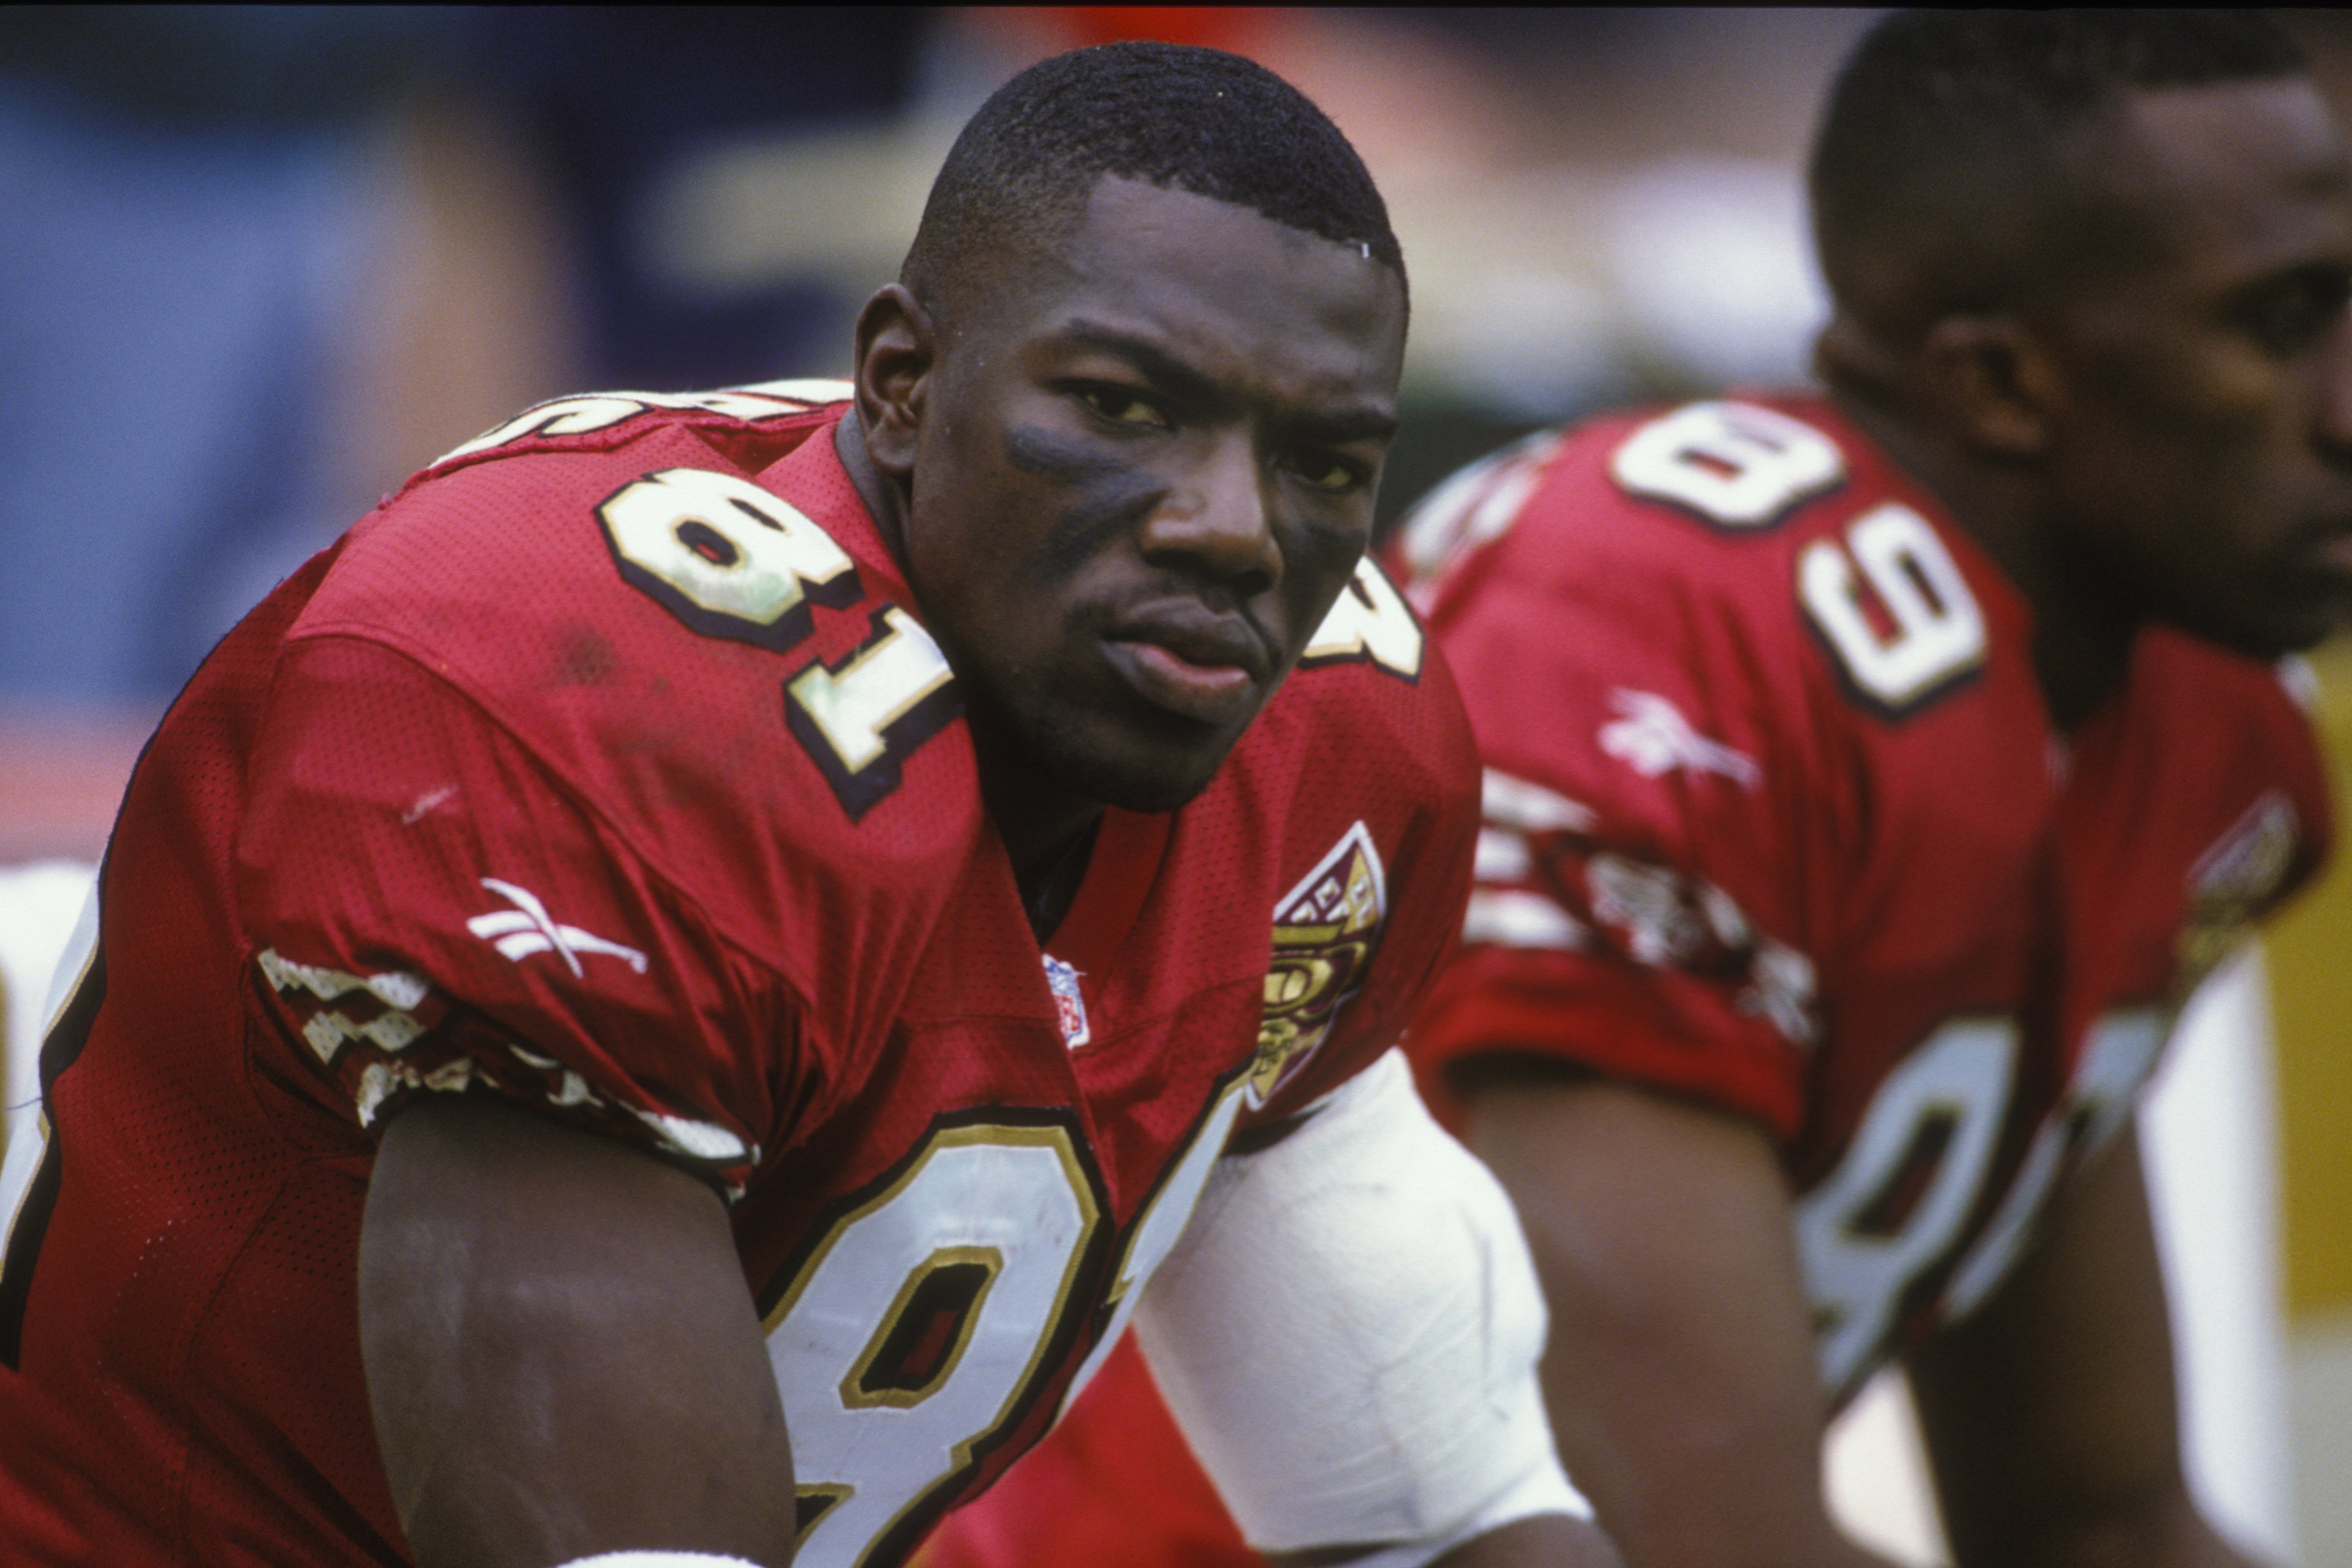 Terrell Owens looks on from the bench in 1996